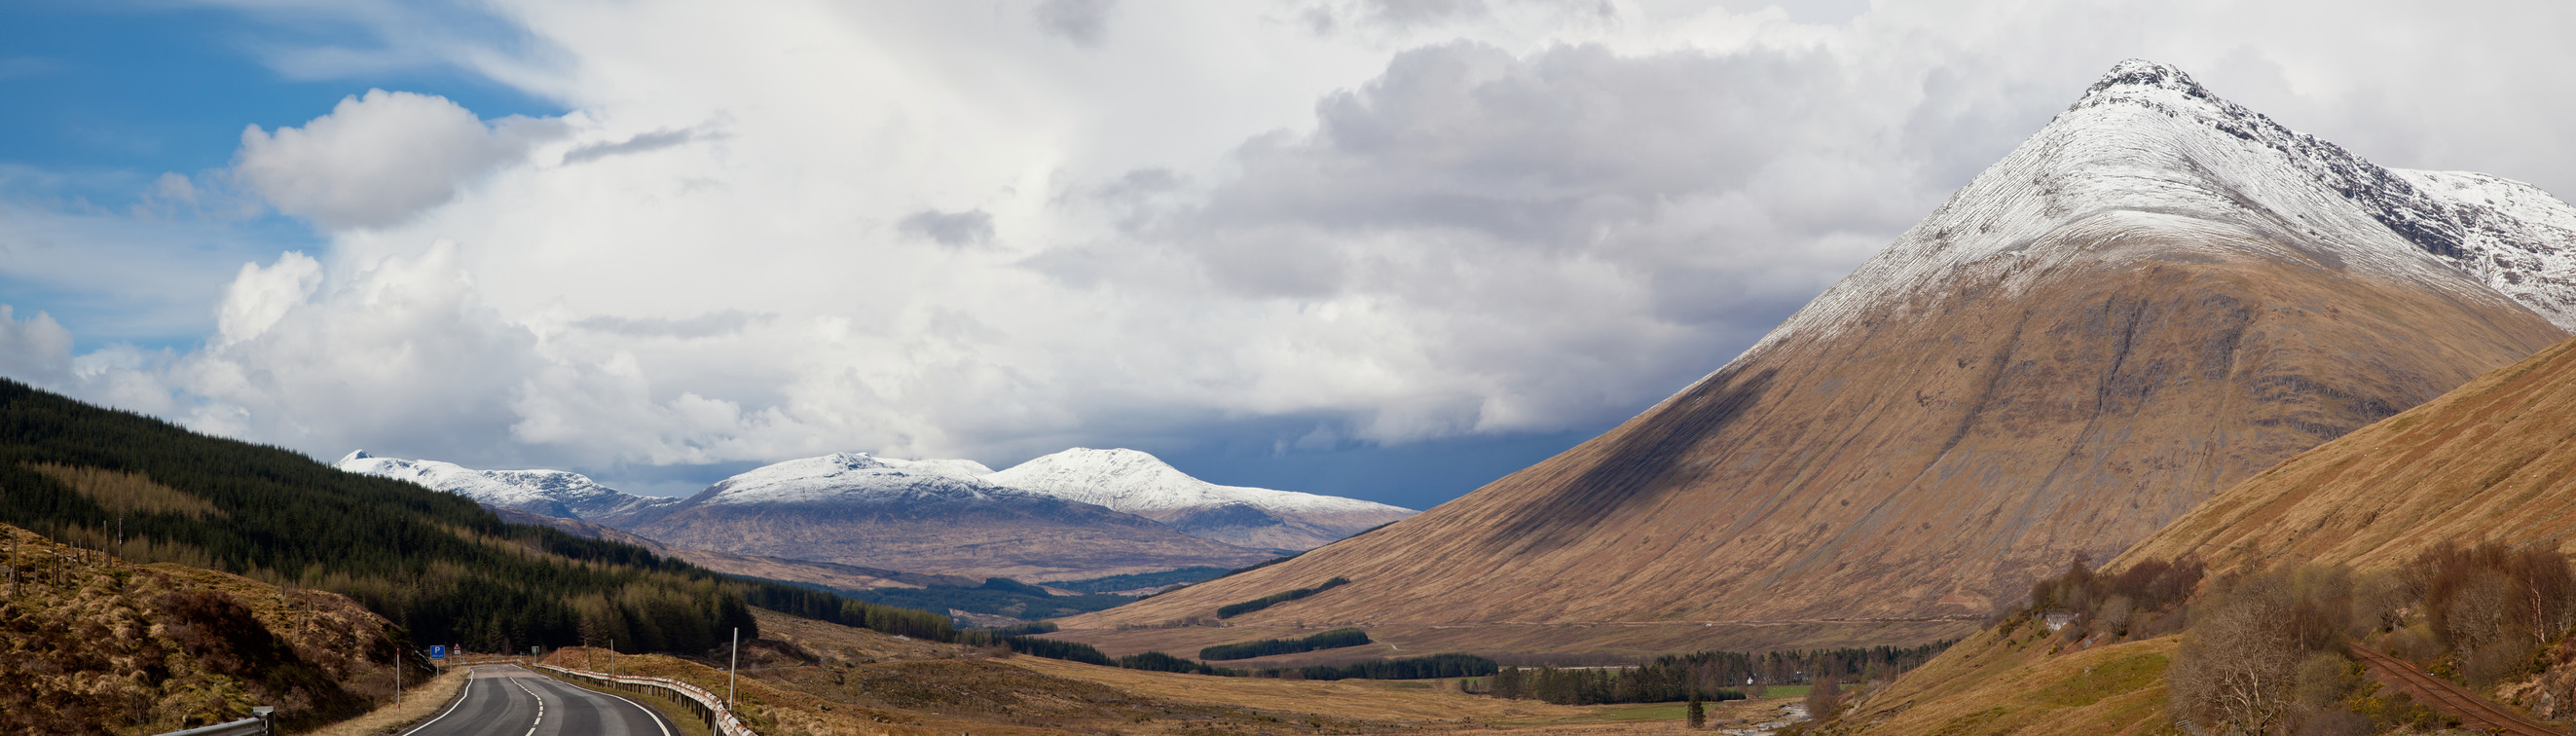 Panorama Empty Countryside Road Highway of Highlands Scotland with Beautiful Snow Mountain Range